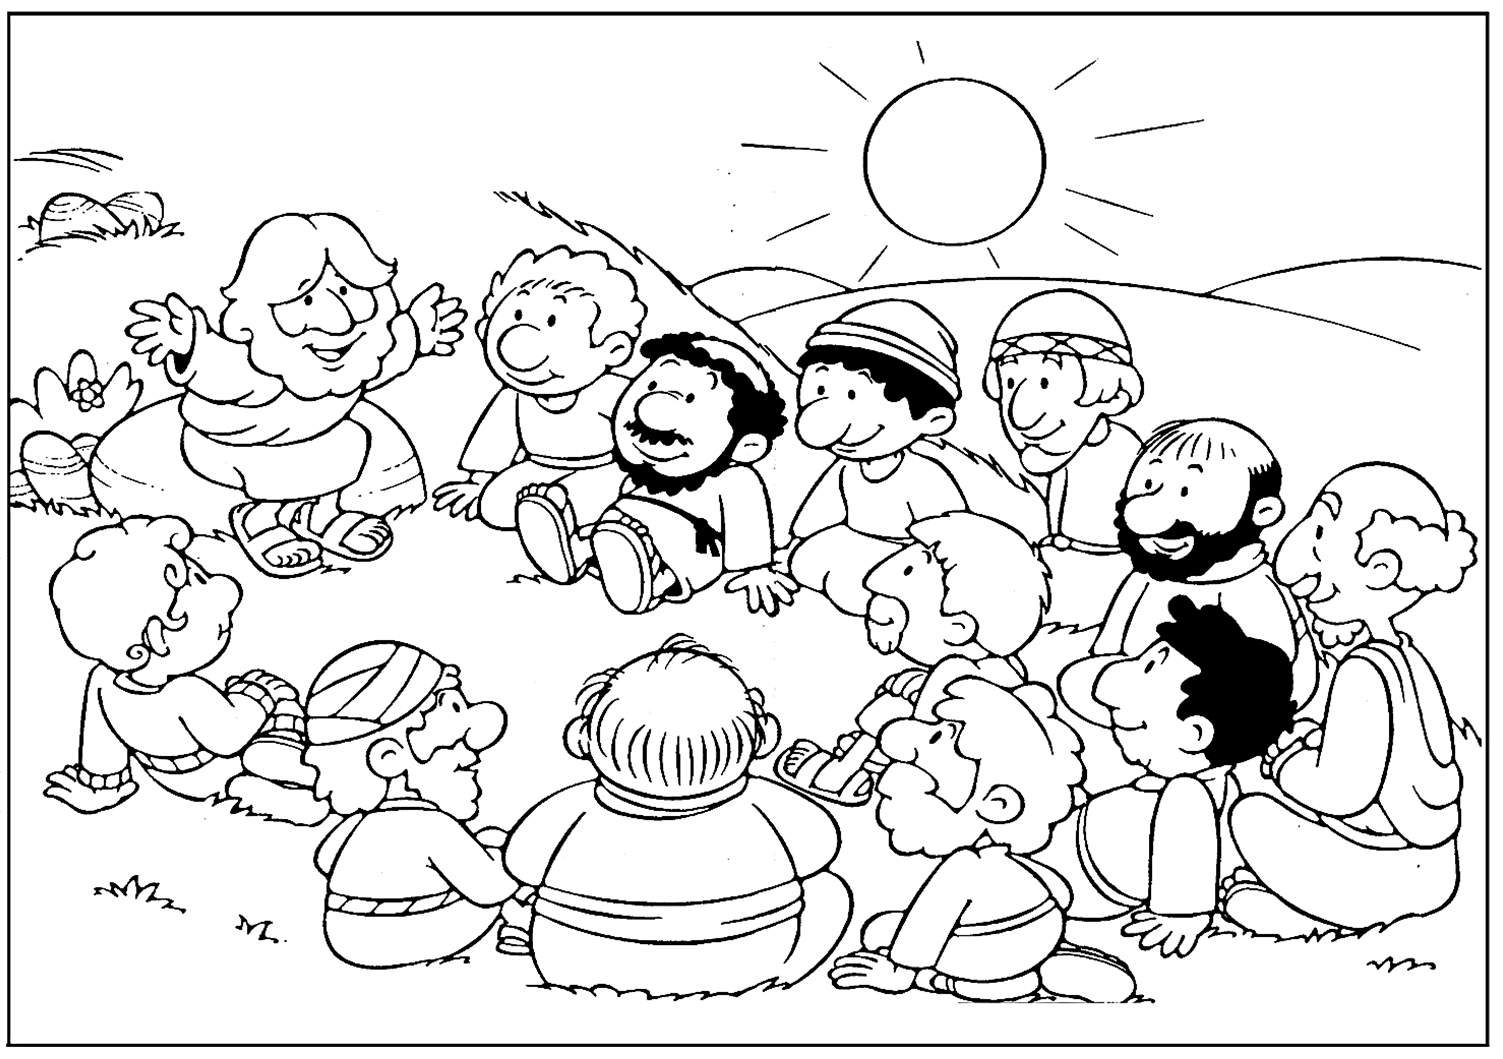 jesus and the 12 disciples coloring page drawing jesus disciples coloring page drawing jesus the jesus 12 disciples coloring page and